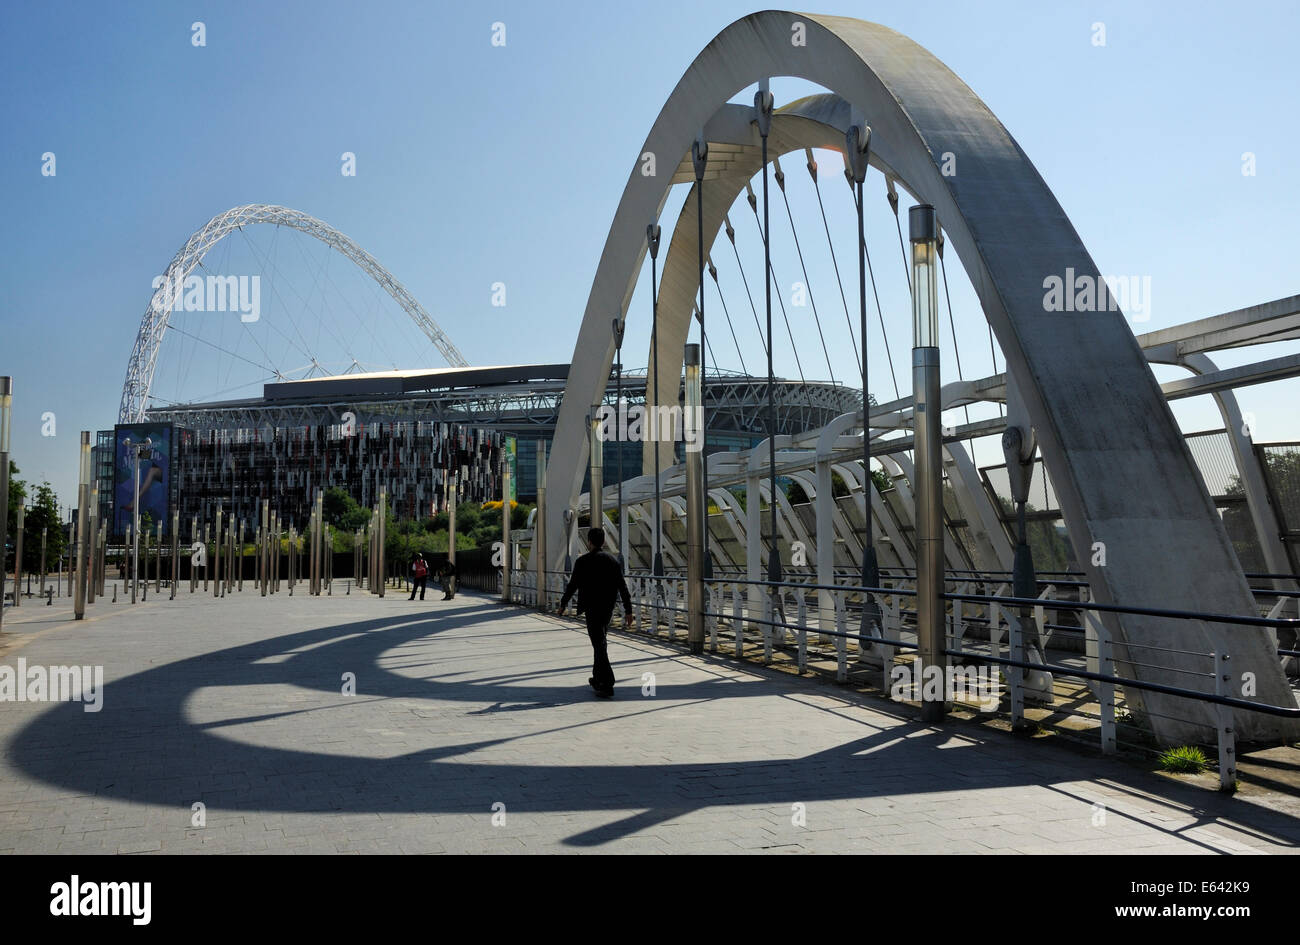 Wembley Stadium, from Wembley Station Bridge - Stock Image